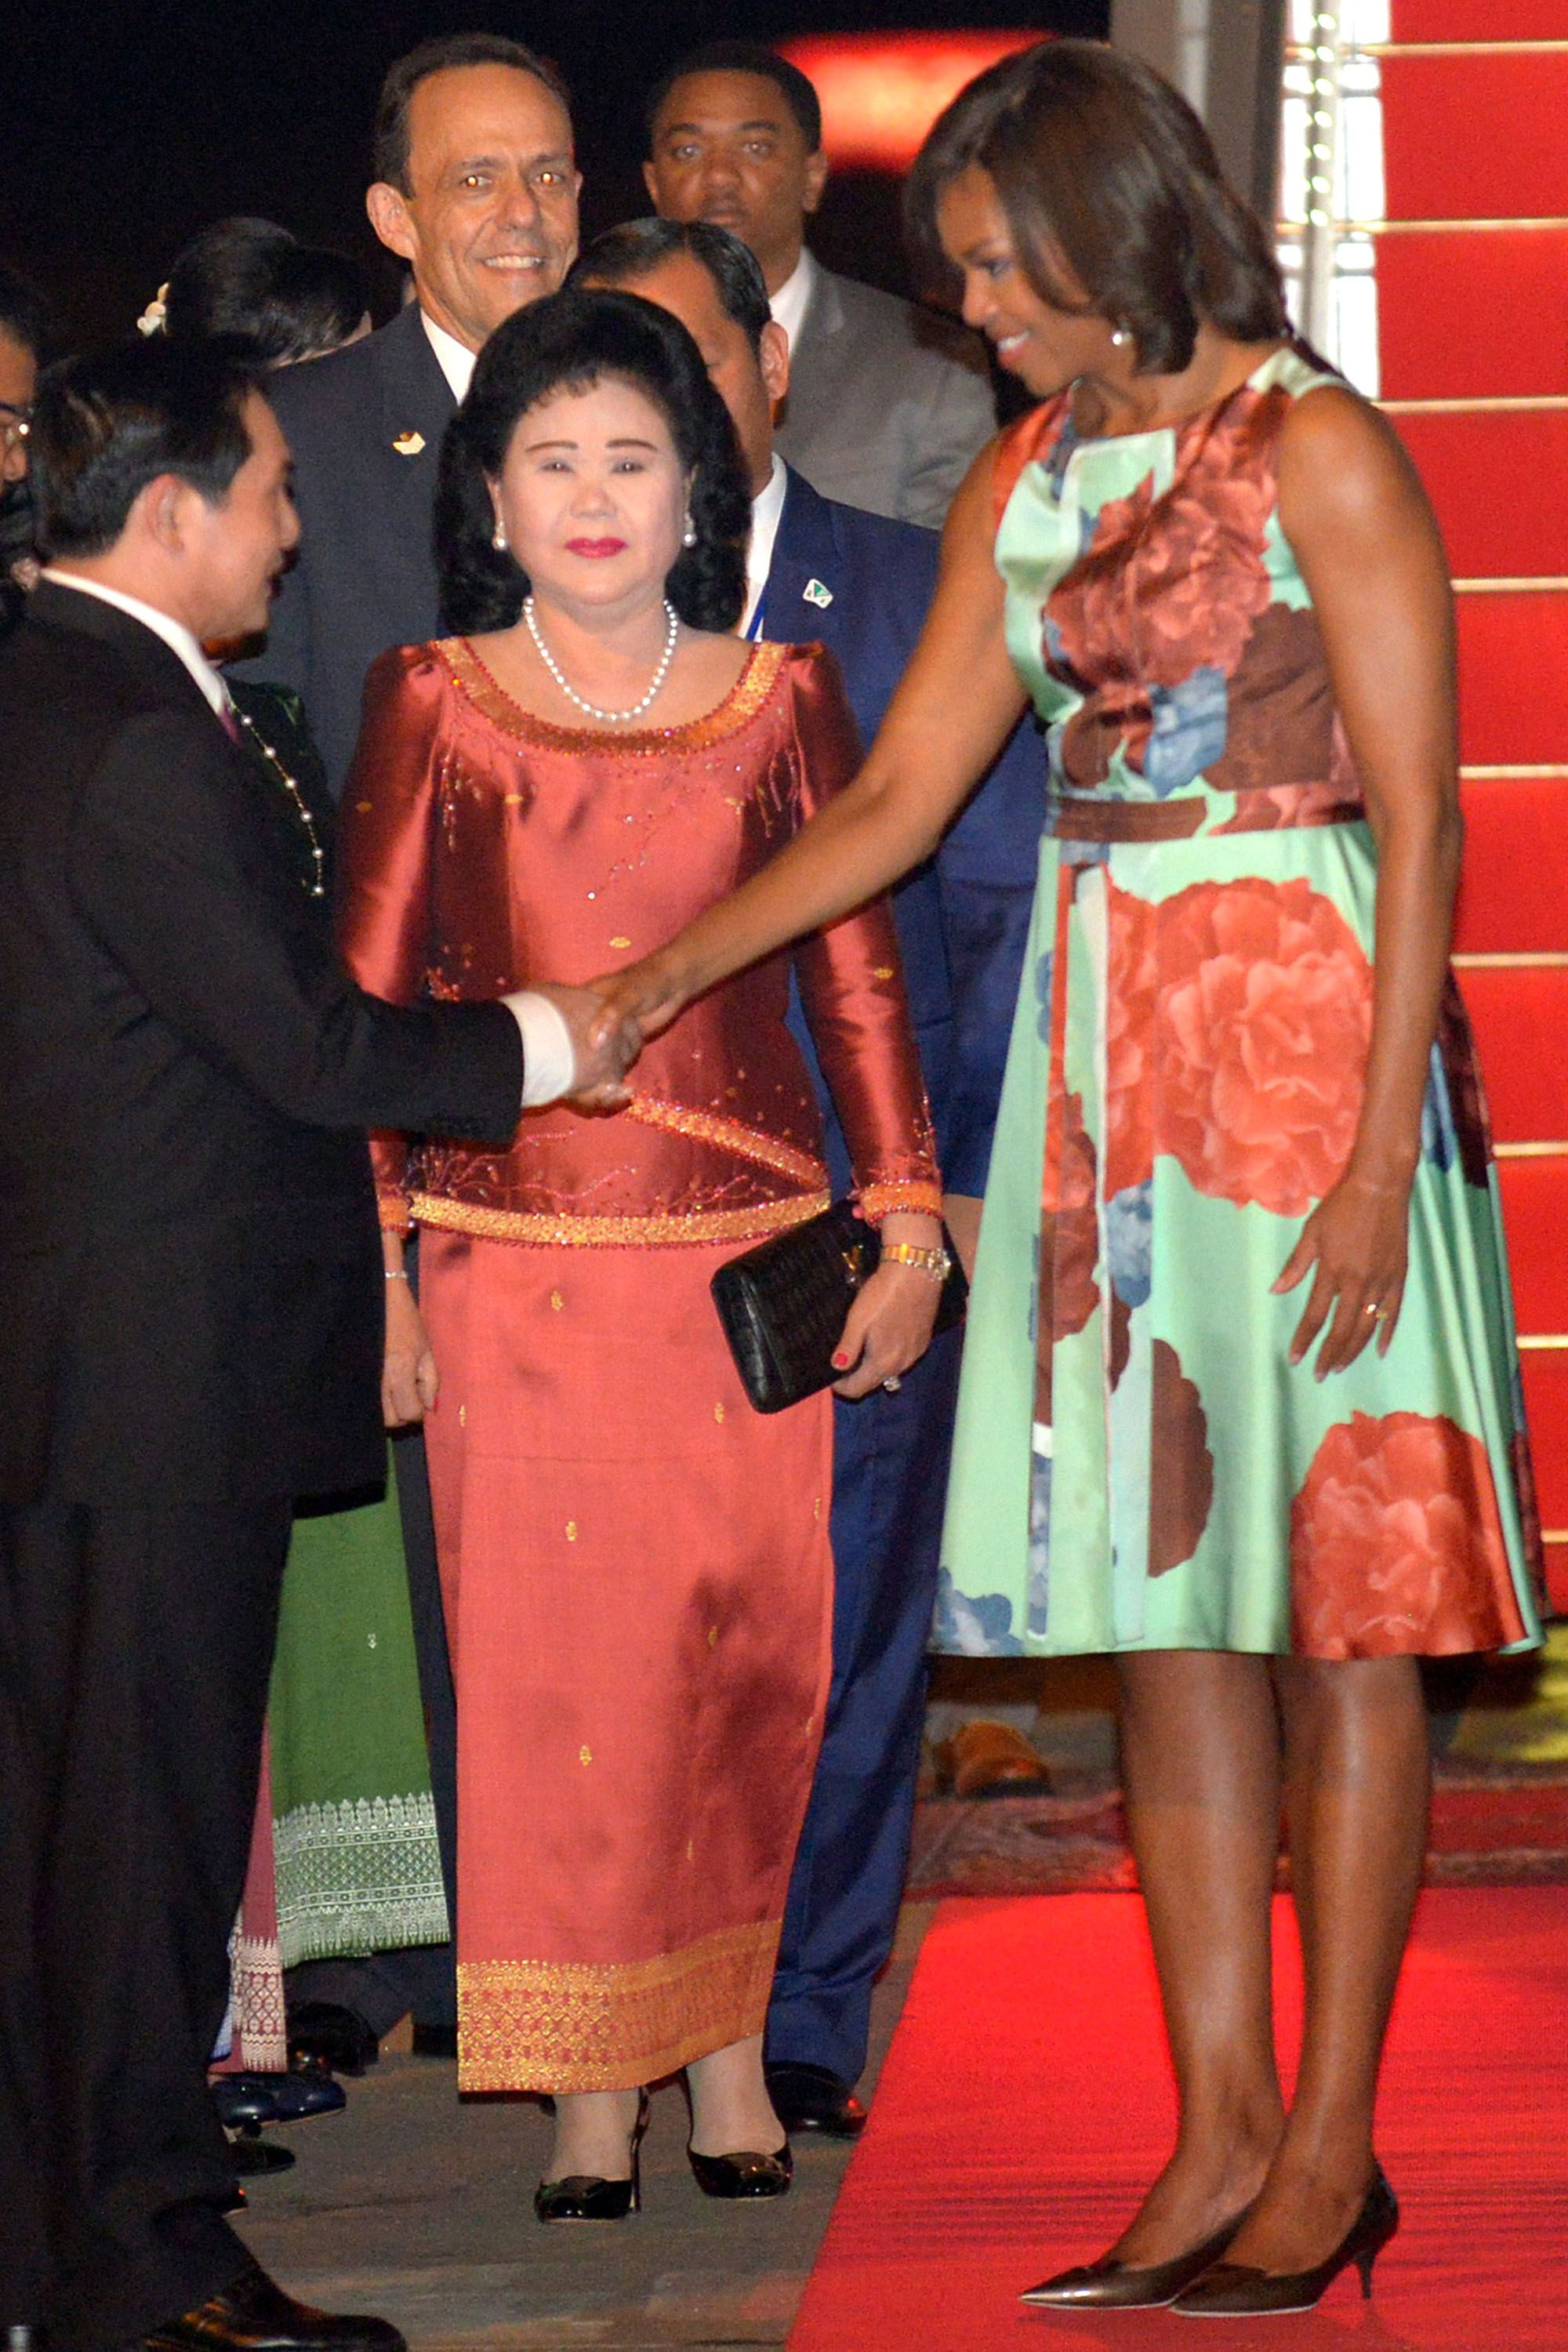 US First Lady Michelle Obama (2nd R) shakes hands with Cambodian government officials as Cambodian First Lady Bun Rany (C) welcomes her arrival at Siem Reap international airport late on March 20, 2015. Michelle Obama flew into Cambodia late March 20 becoming the first wife of a sitting US president to visit the country, part of a two-nation trip to highlight the importance of girls' education. AFP PHOTO / TANG CHHIN SOTHY        (Photo credit should read TANG CHHIN SOTHY/AFP/Getty Images)